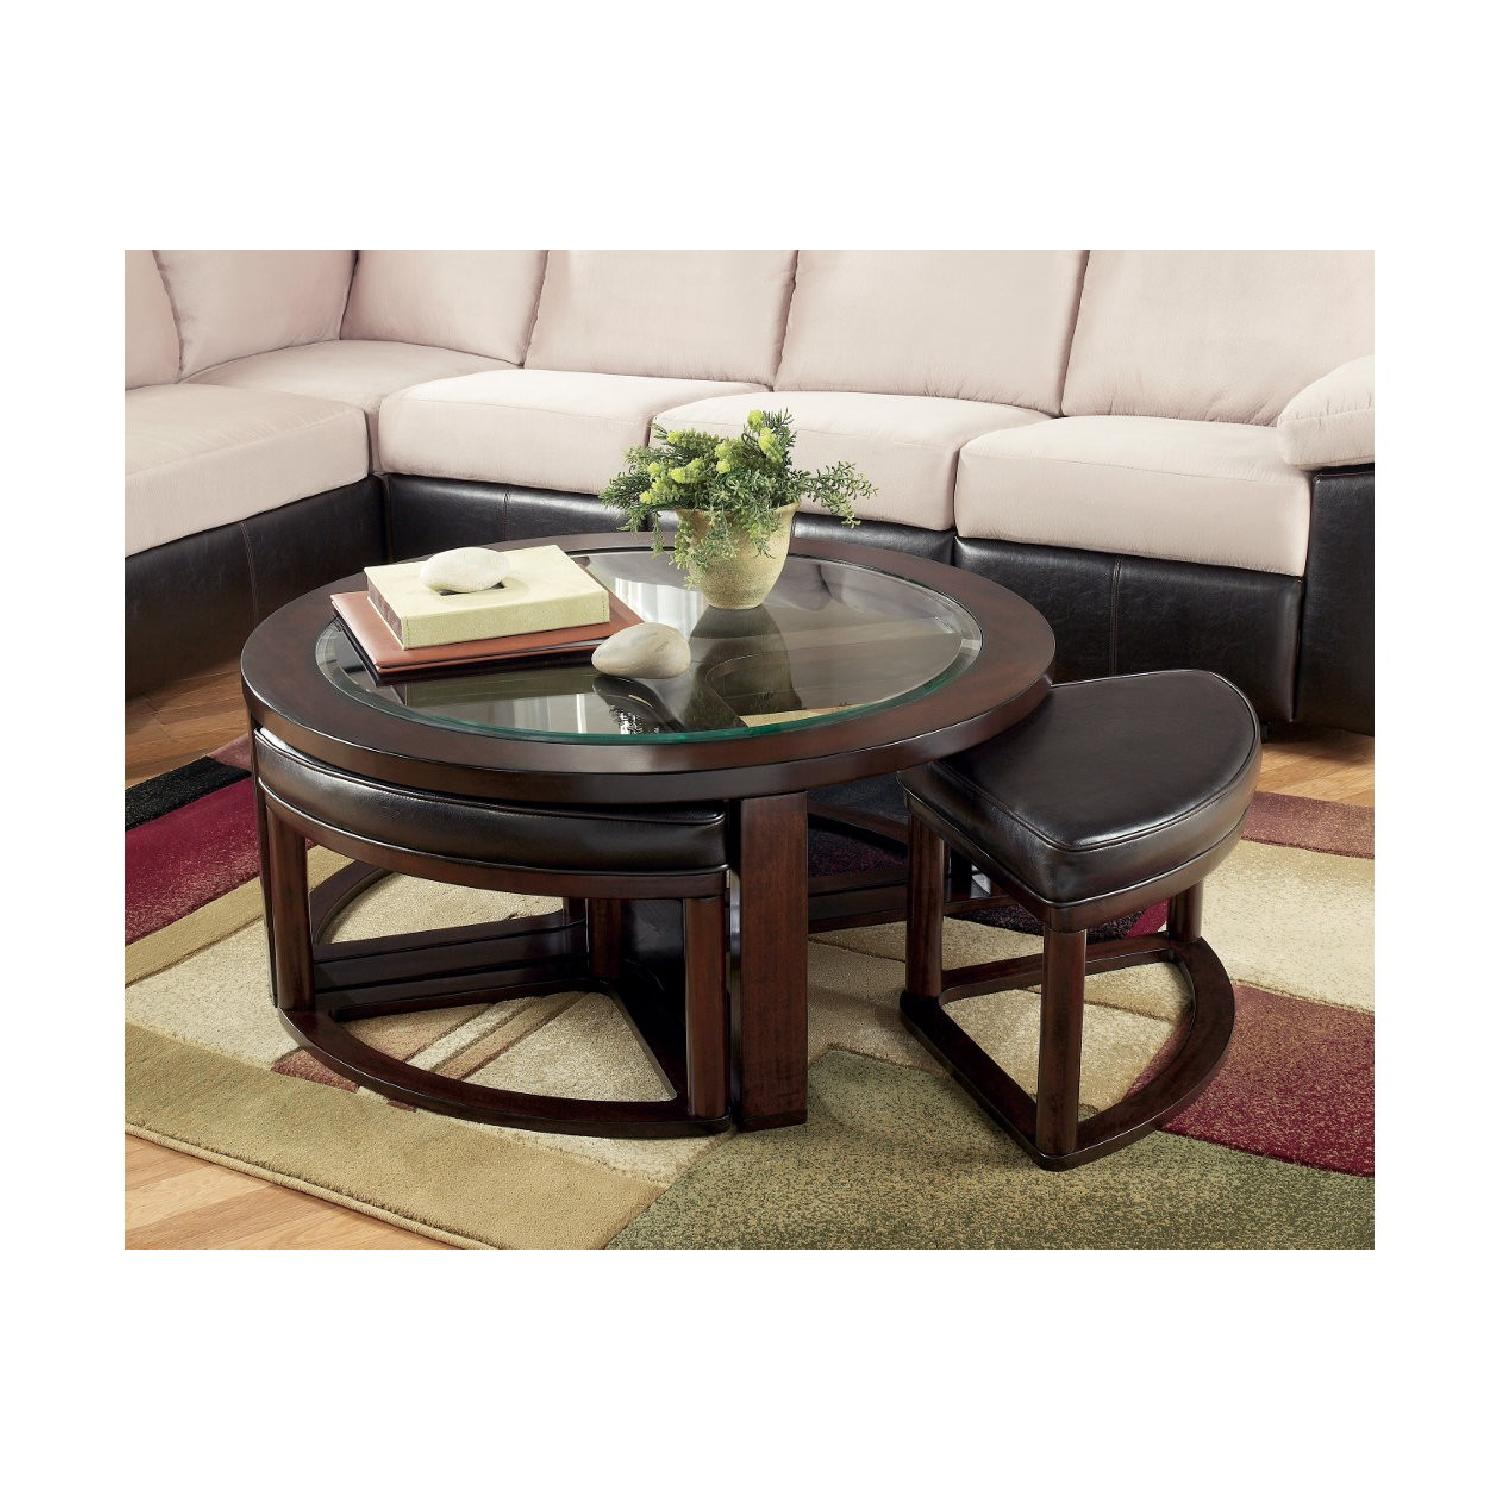 Ashley Wood & Glass Coffee Table w/ 4 Nesting Stools - image-2